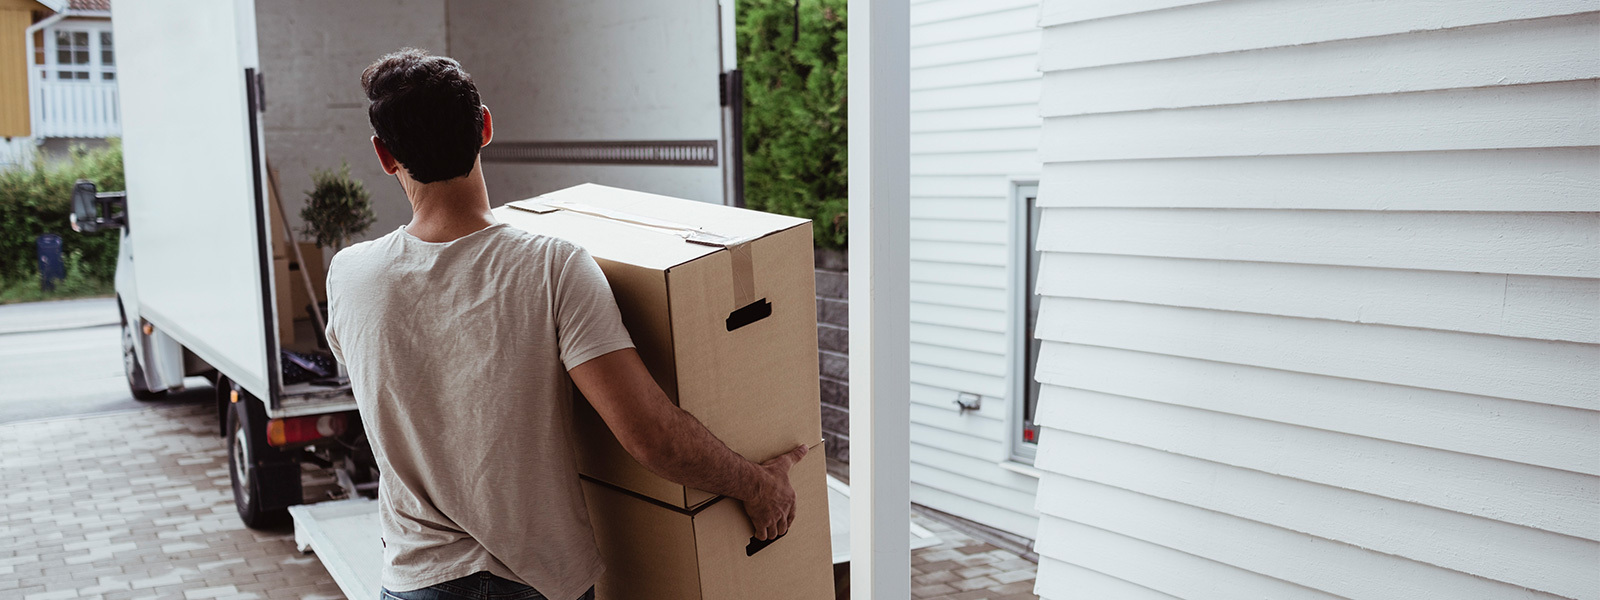 Man carrying boxes to a moving truck